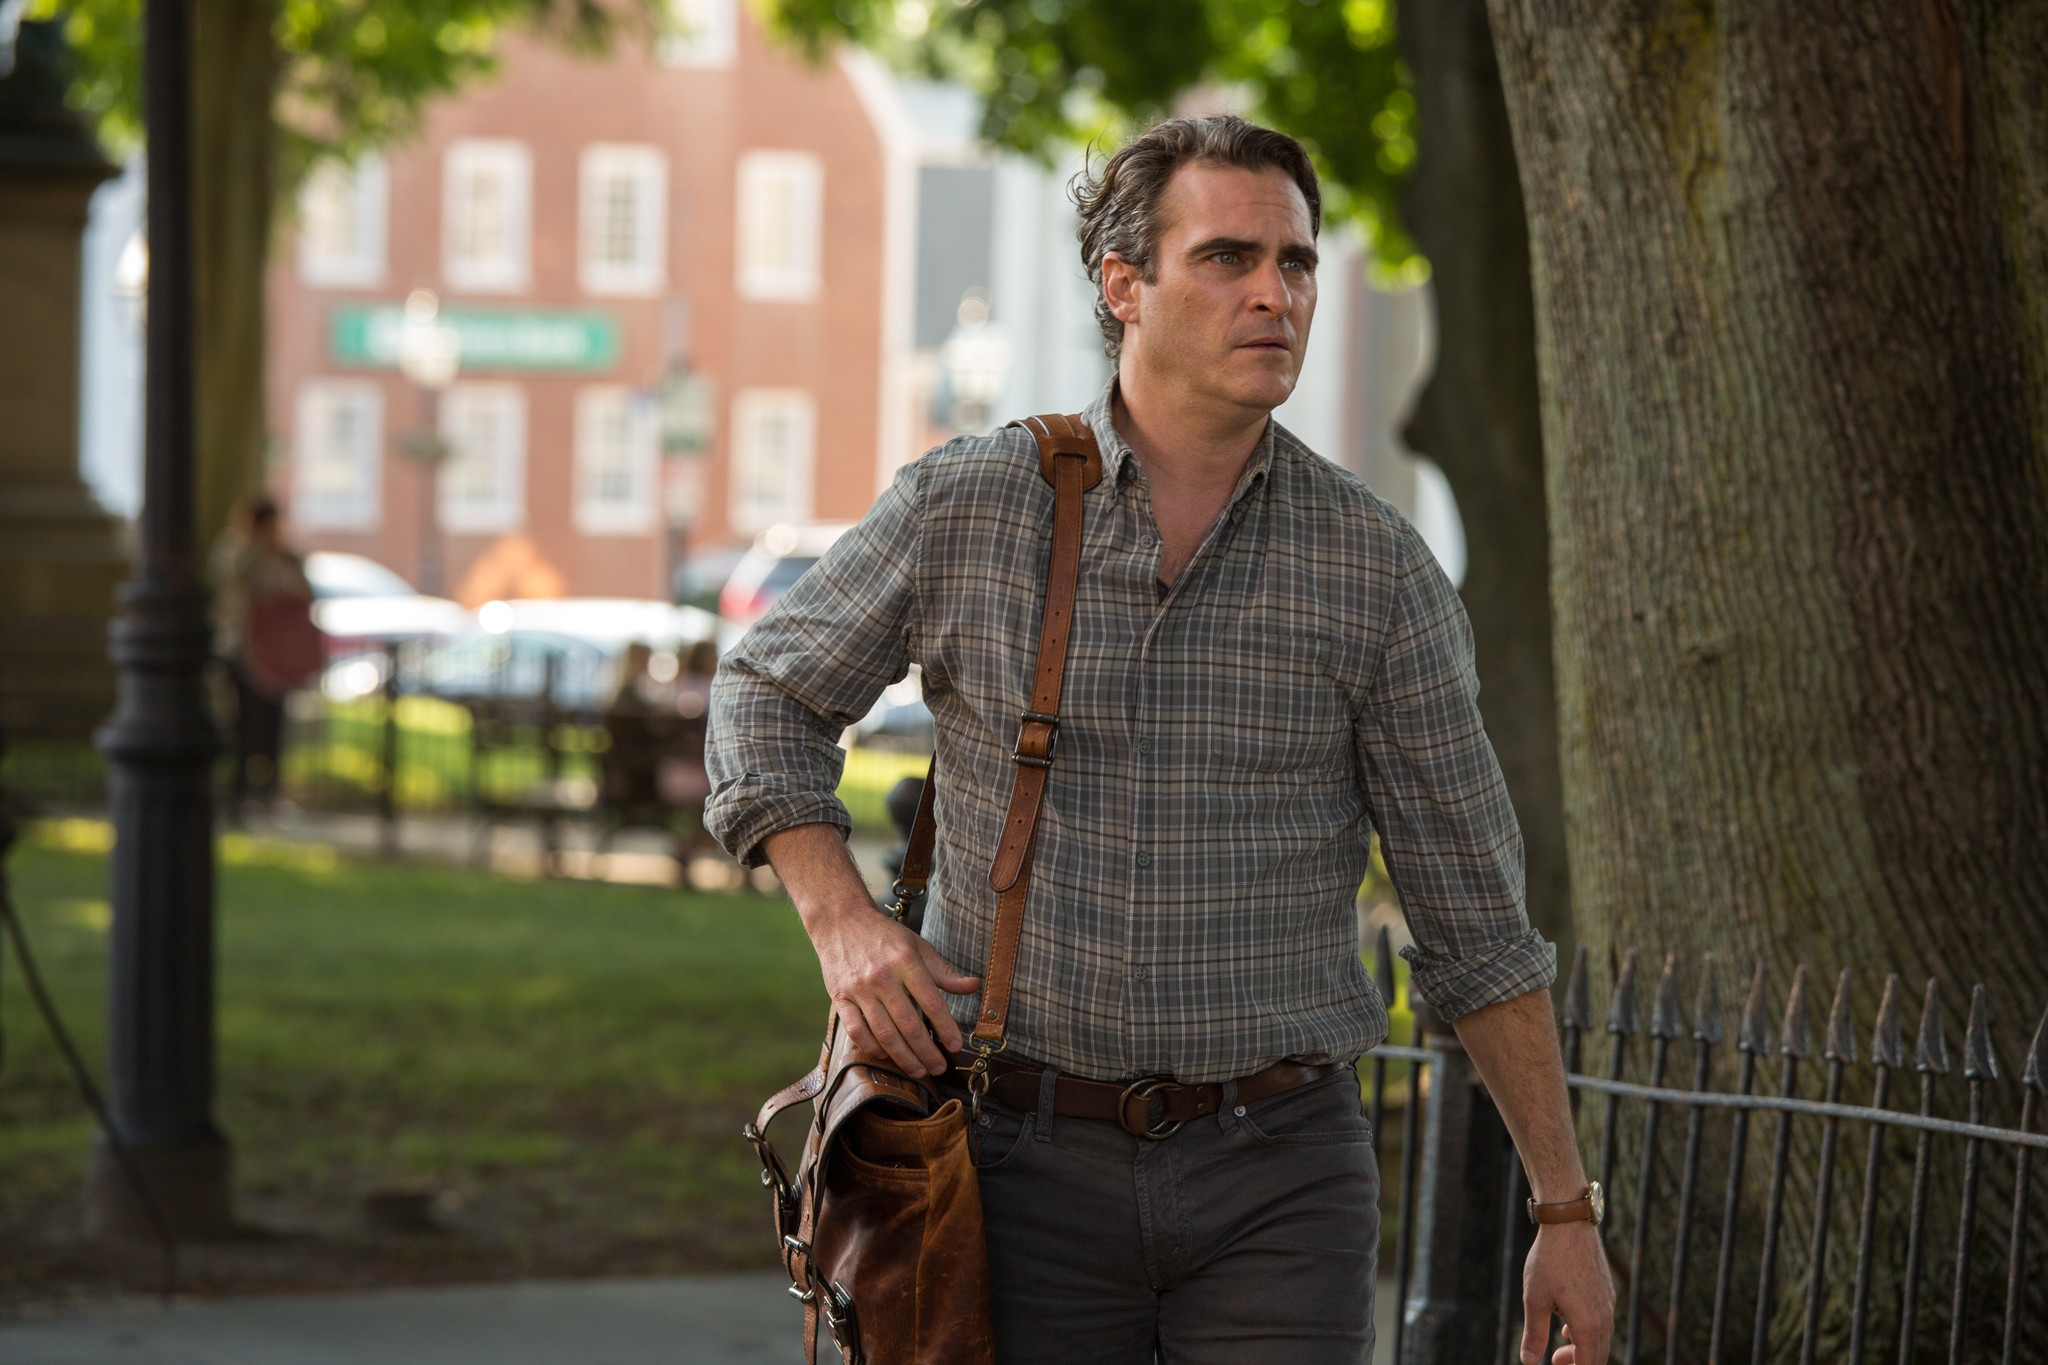 Amazing Irrational Man Pictures & Backgrounds